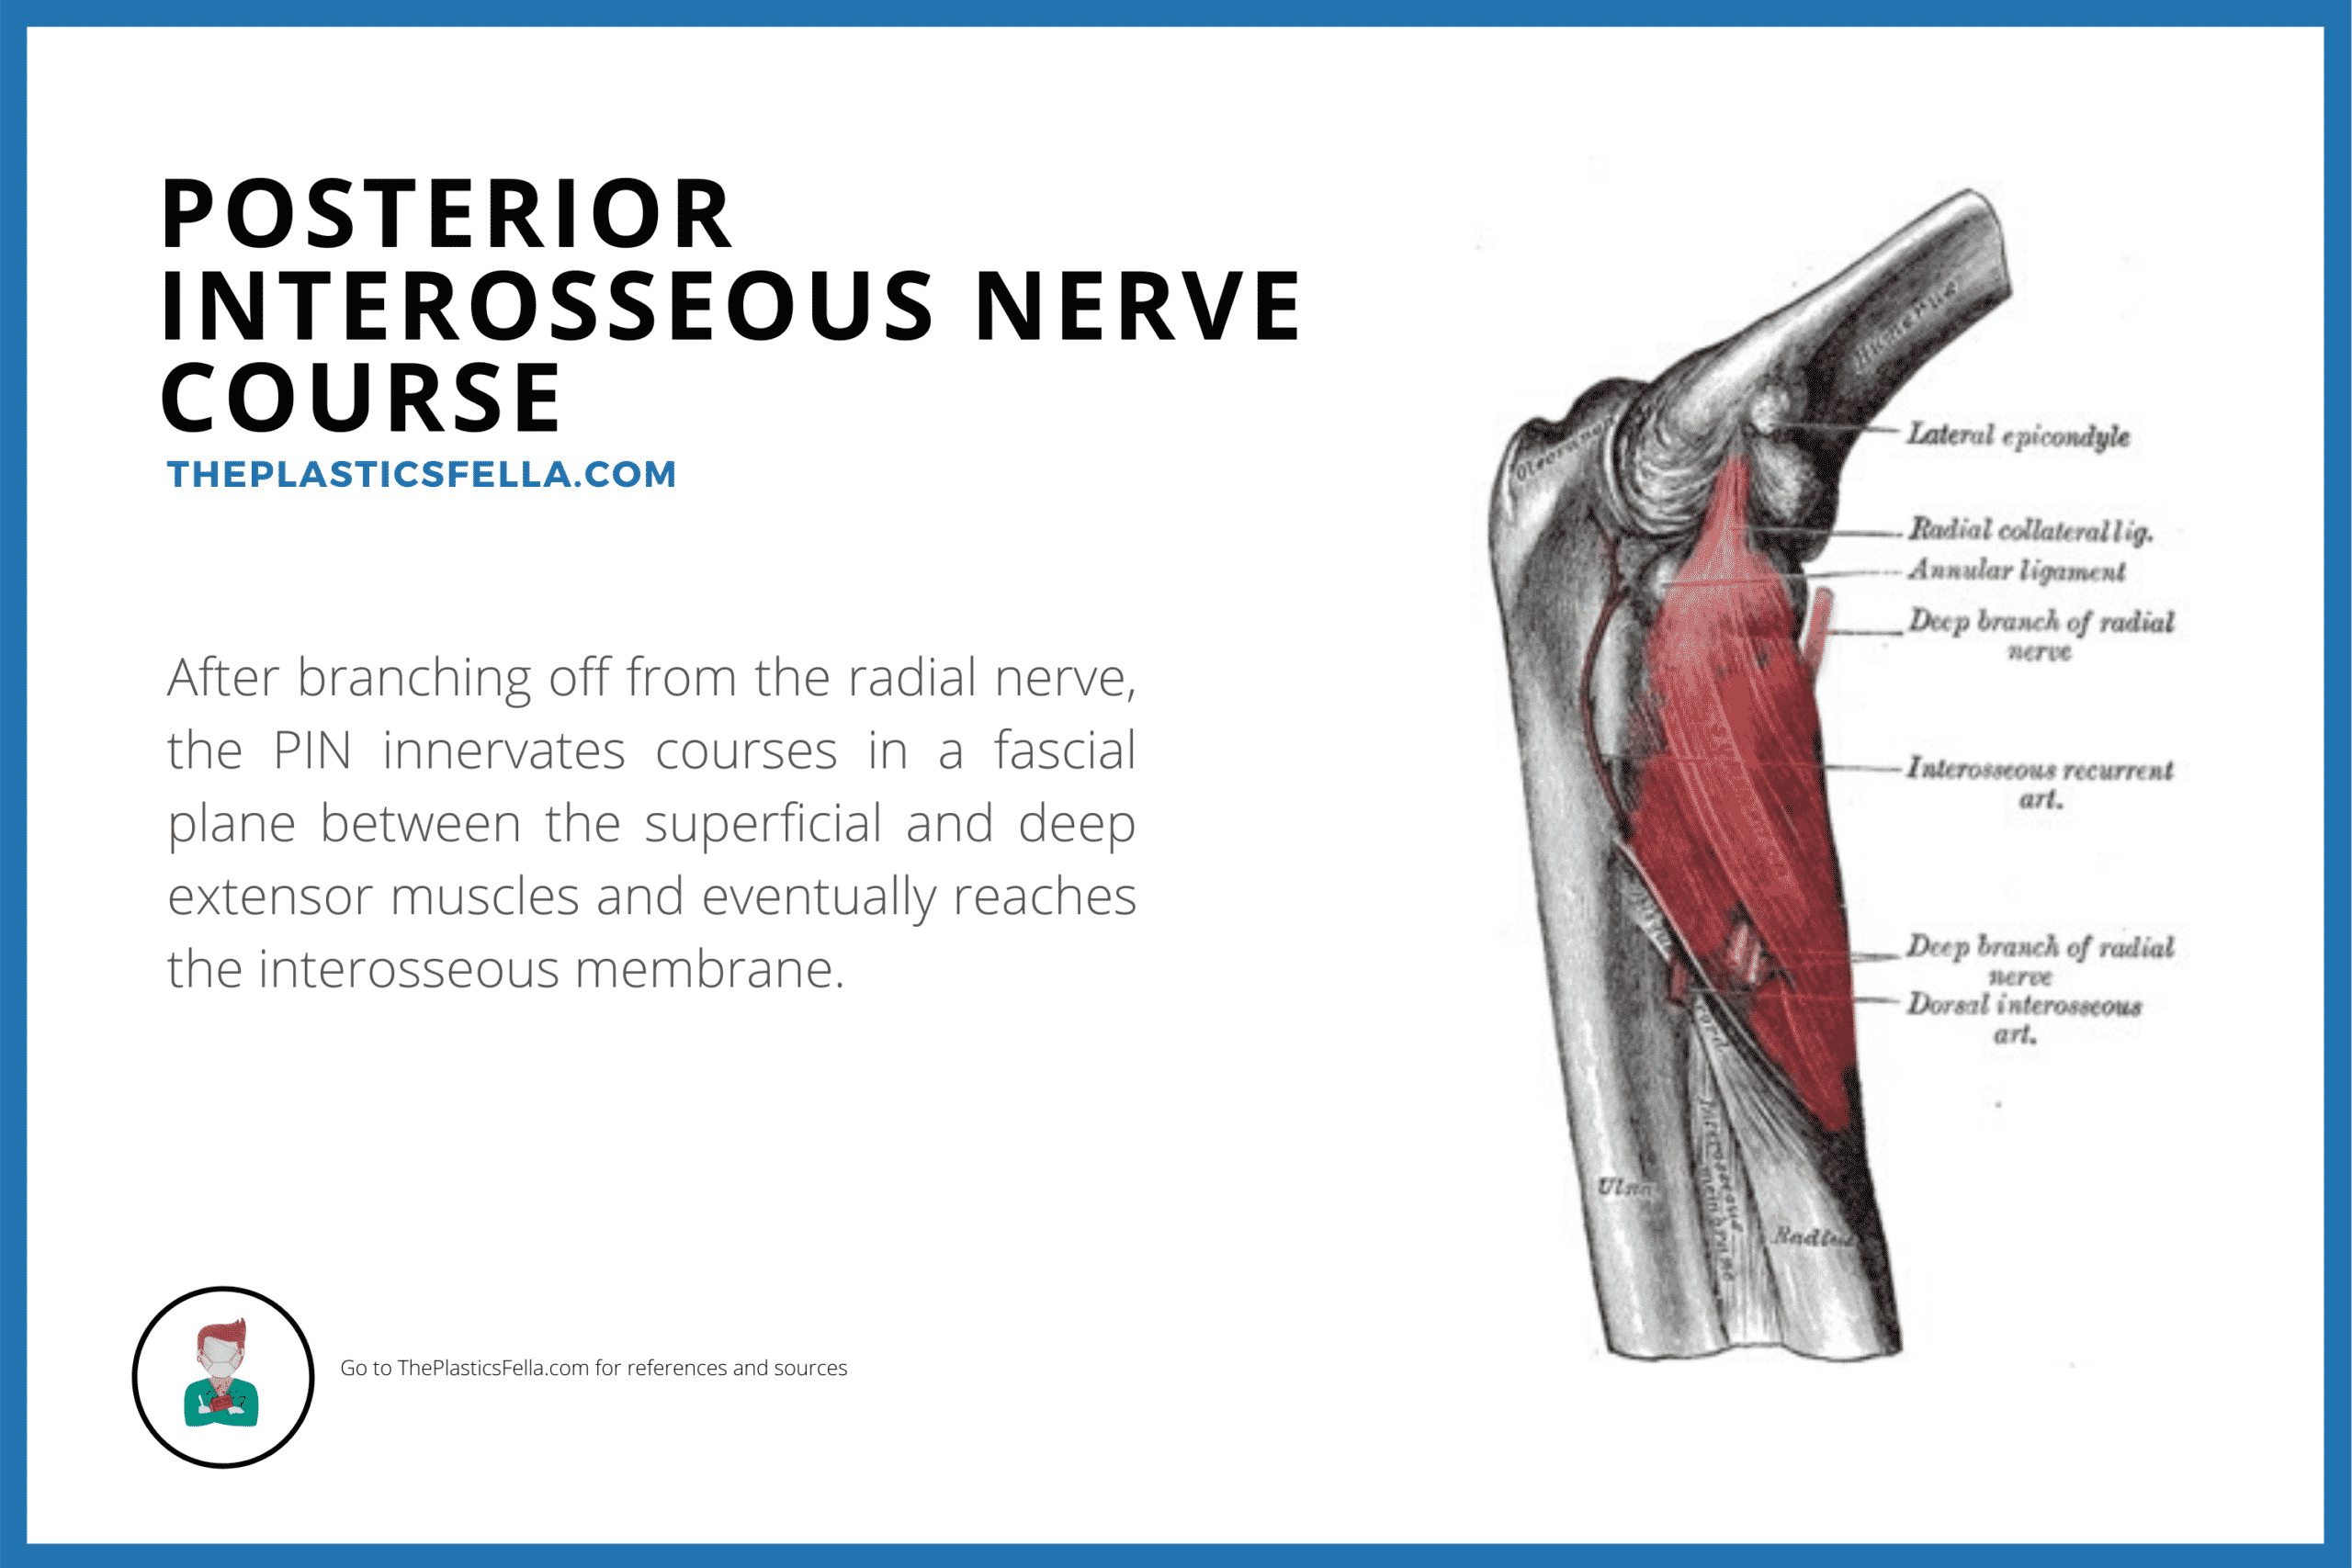 Anatomy of the Posterior Interosseous Nerve and it's course in the arm in causing Posterior Interosseous Nerve syndrome and palsy